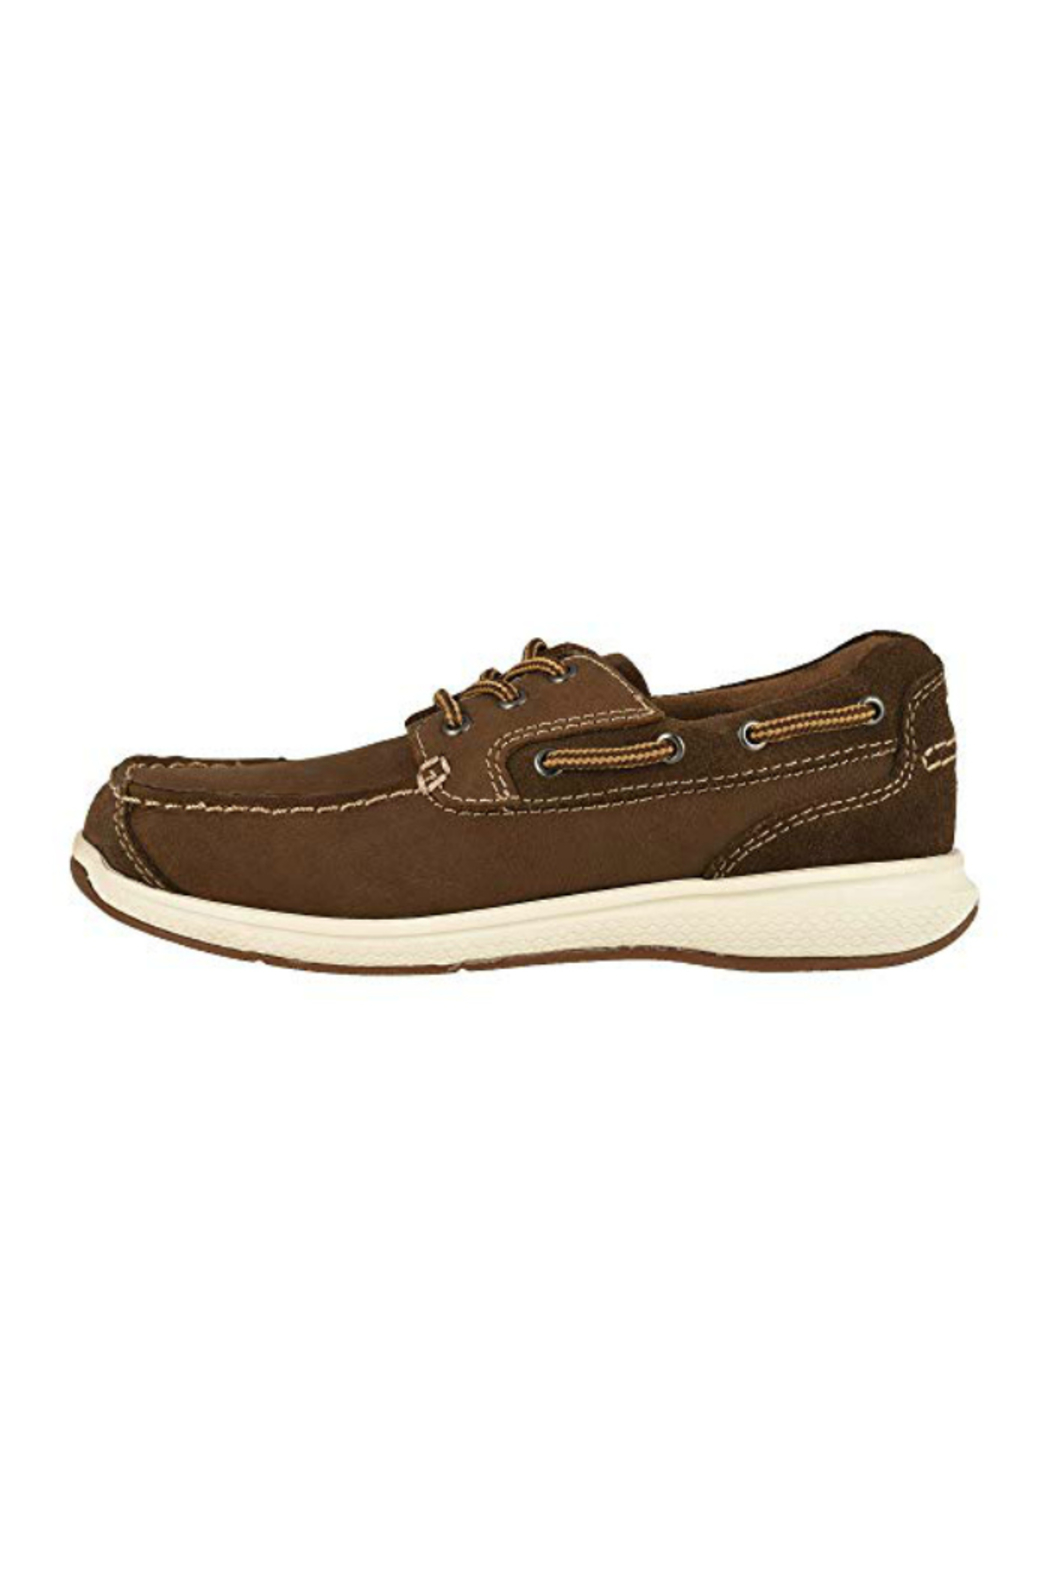 Florsheim FLORSHEIM GREAT LAKES OX JR - Back Cropped Image